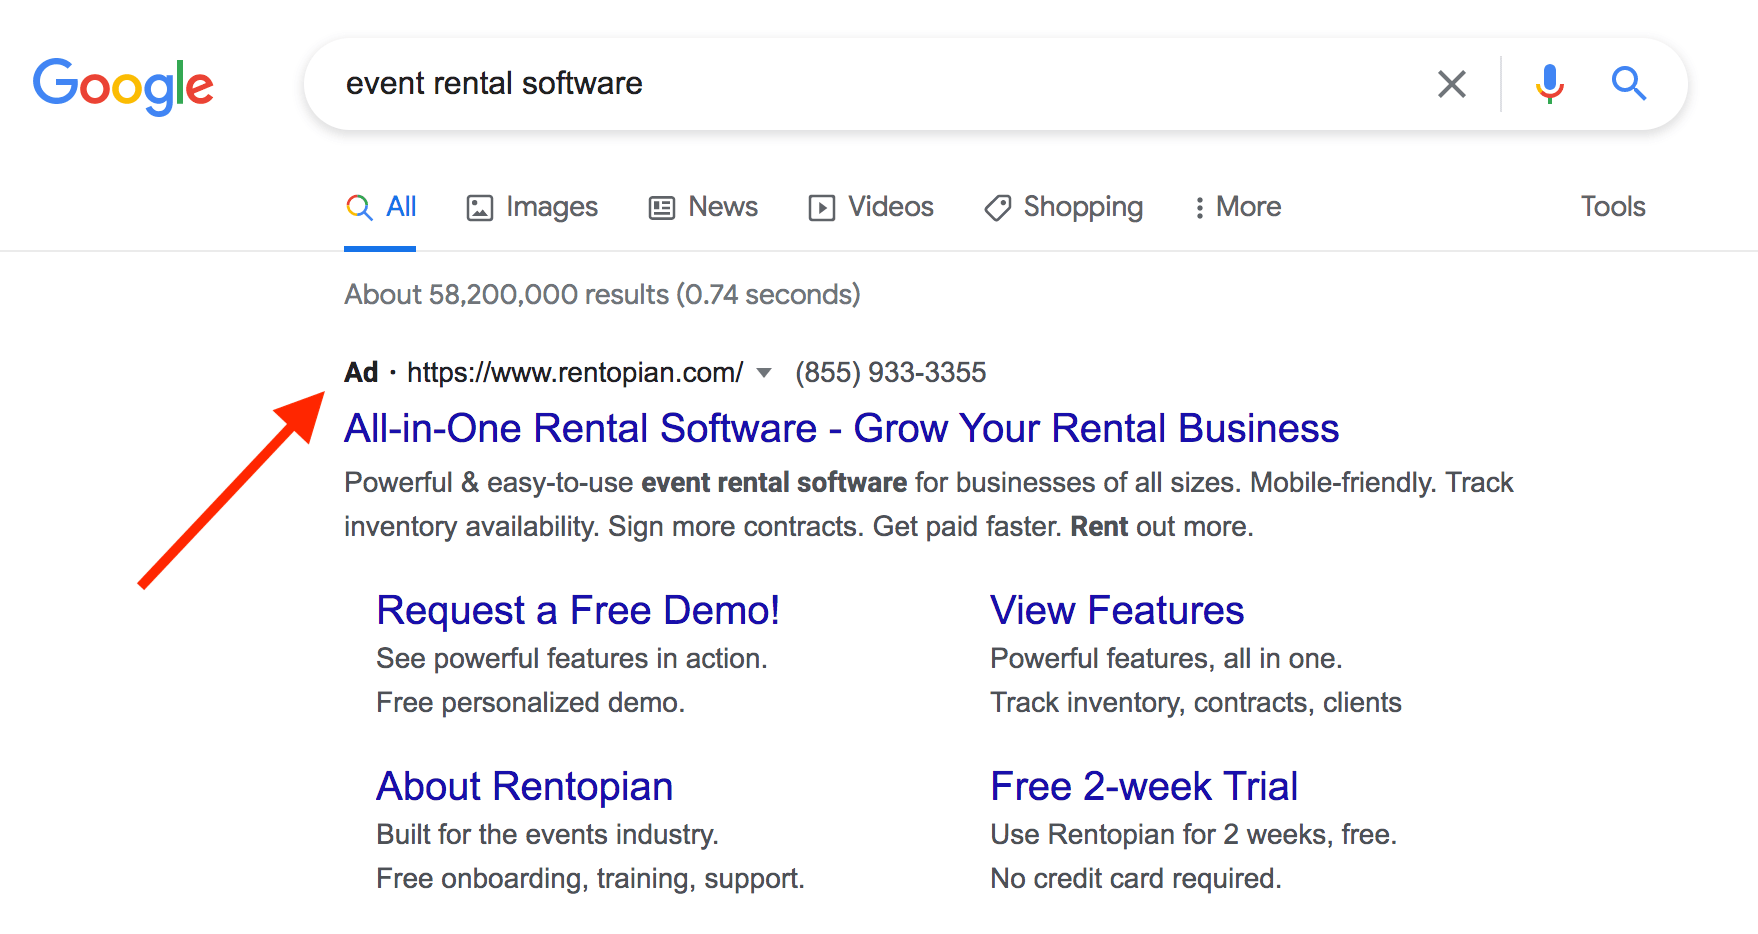 Google Ad for event rental software